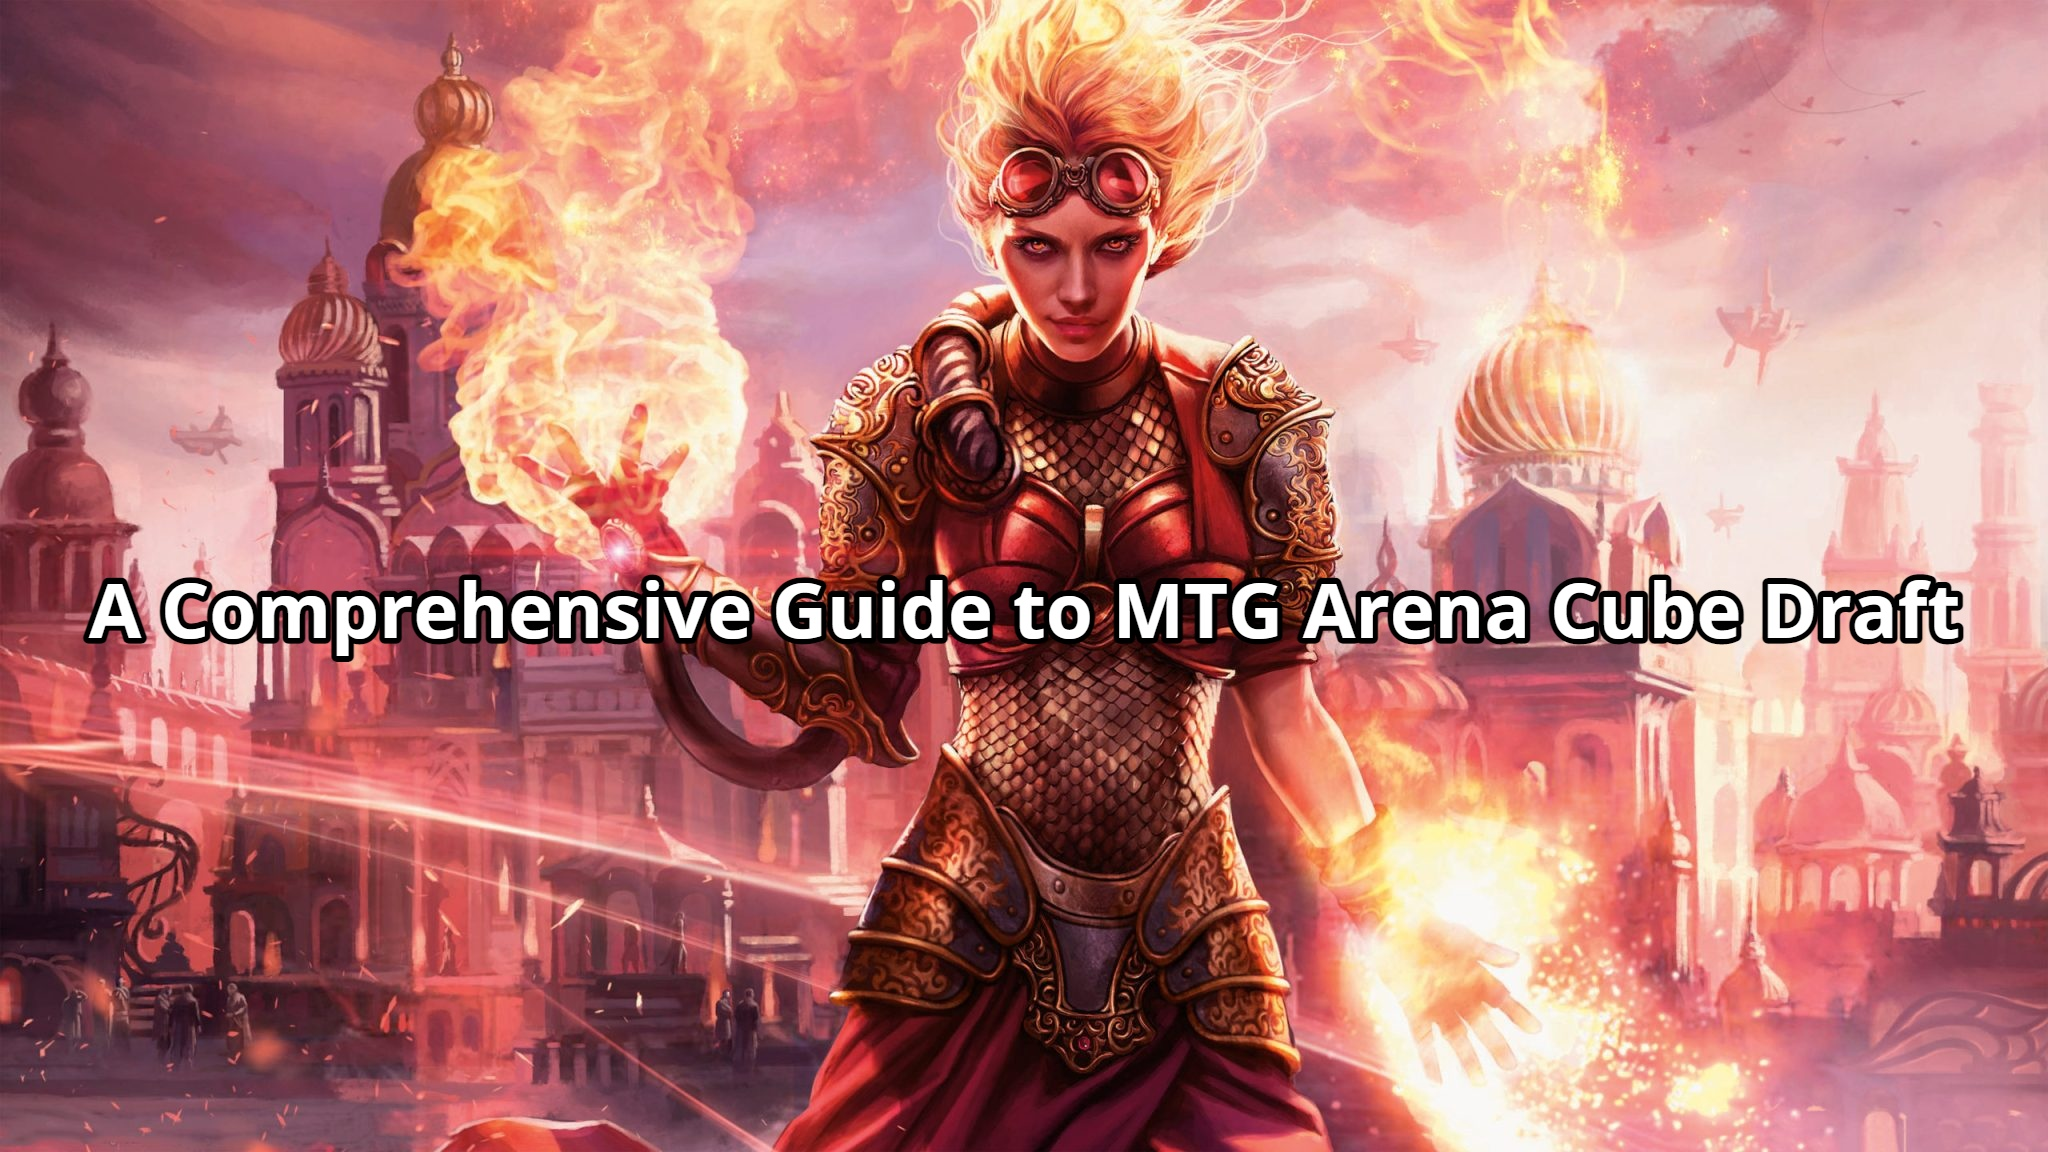 A Comprehensive Guide to MTG Arena Cube Draft